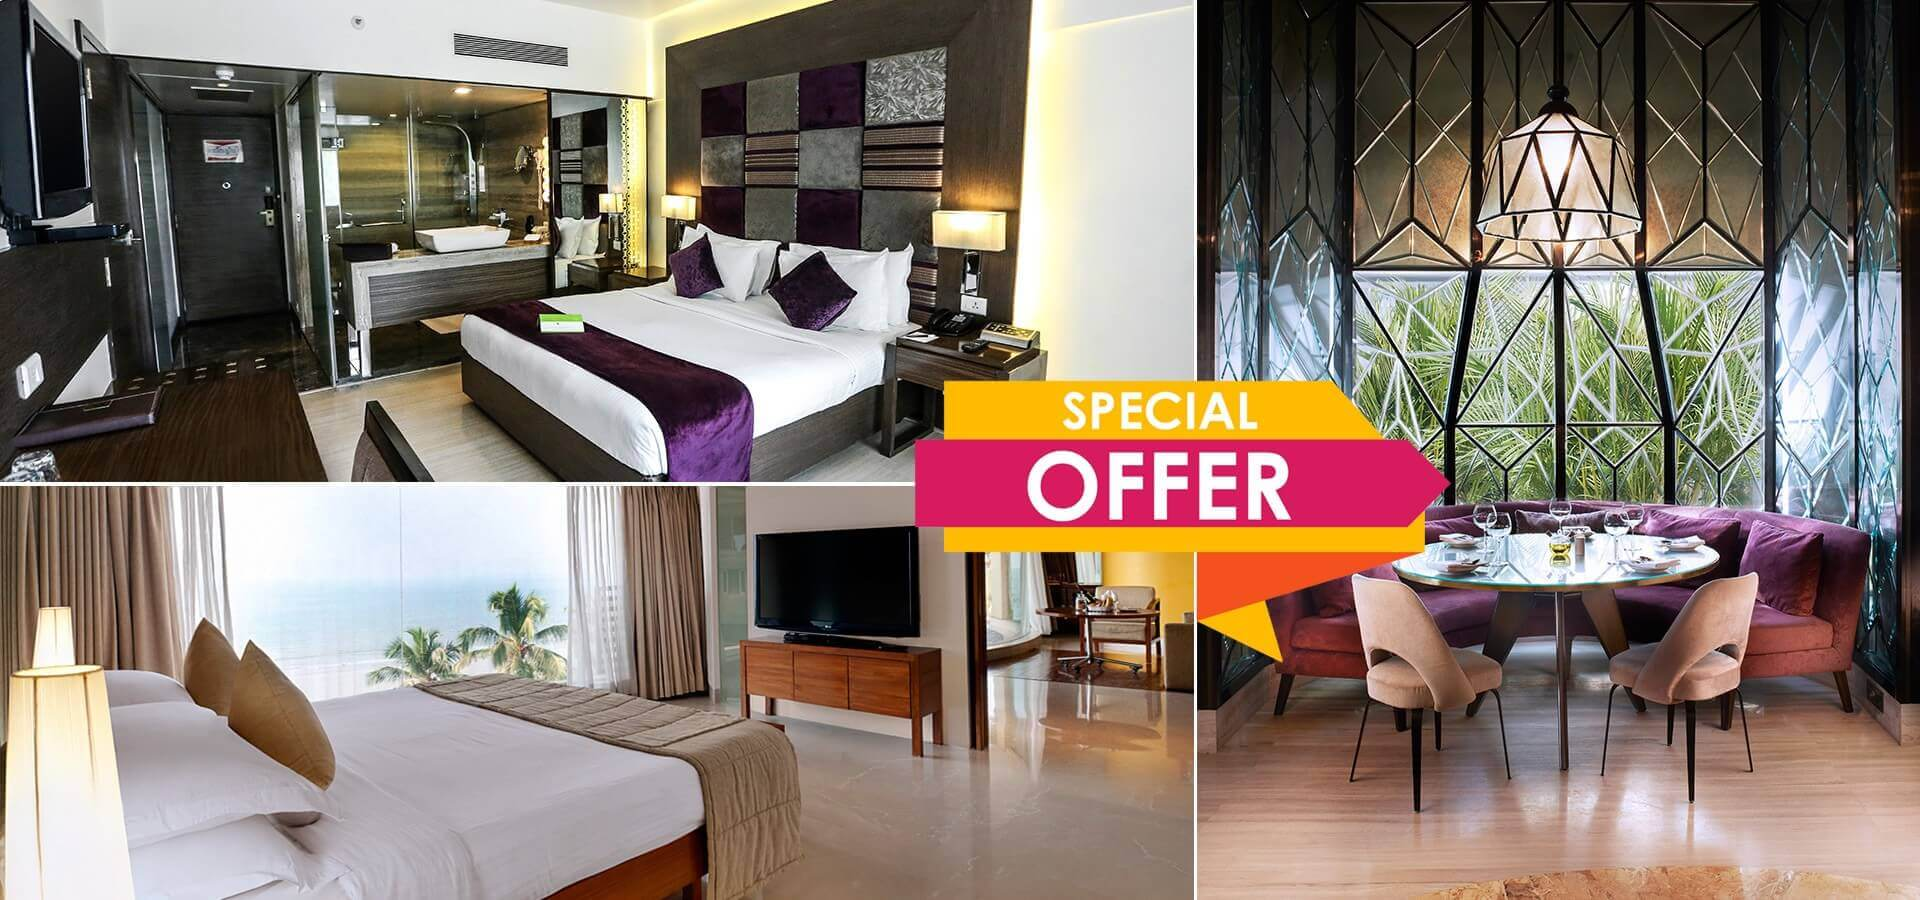 Hotels near Juhu beach, 5 star hotels in Juhu, List of hotels in Juhu, juhu beach hotels, sea facing hotels in Juhu, hotel with free wifi in Juhu, sunday brunch Juhu